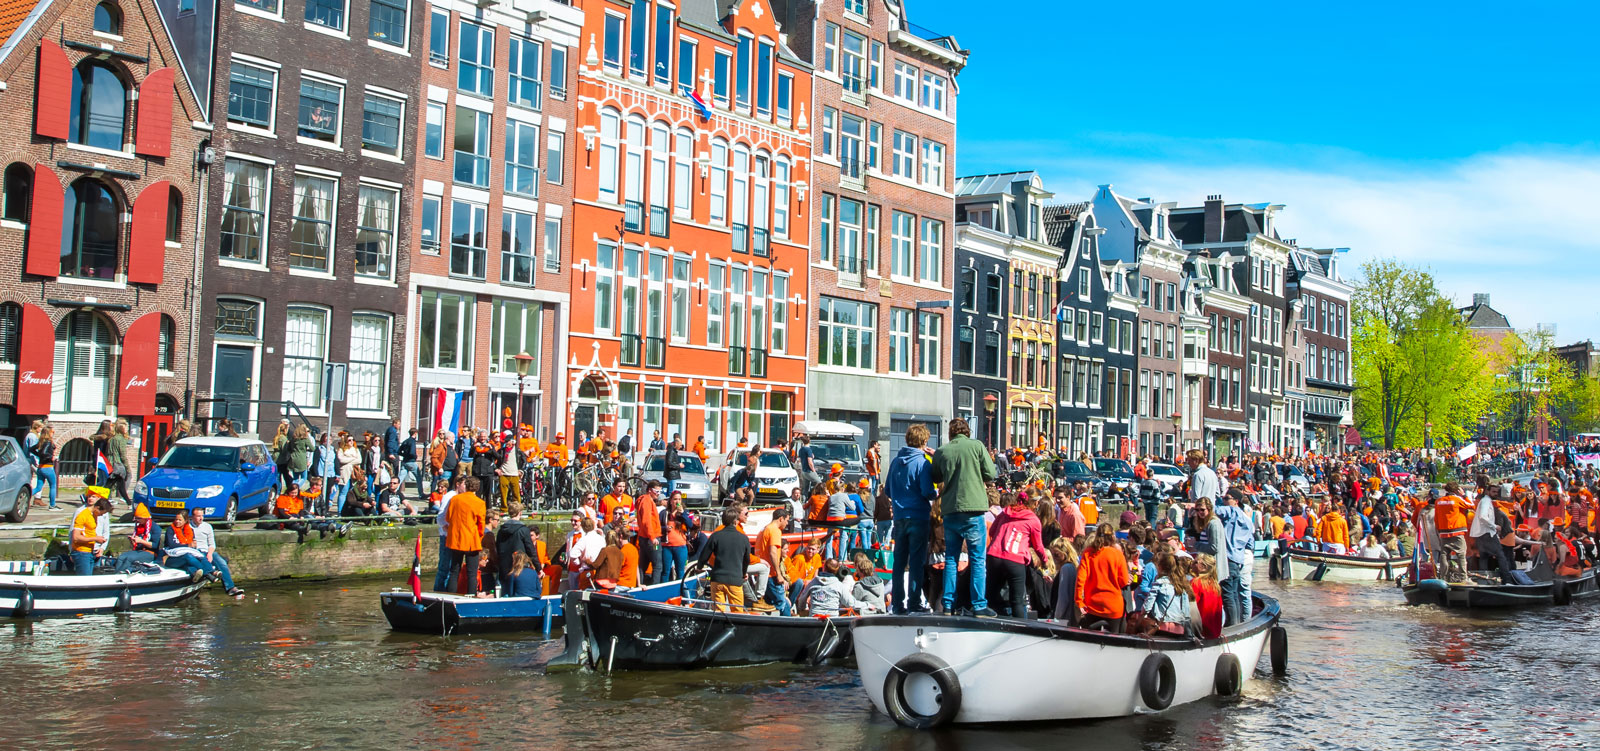 King's Day celebrations in Amsterdam.